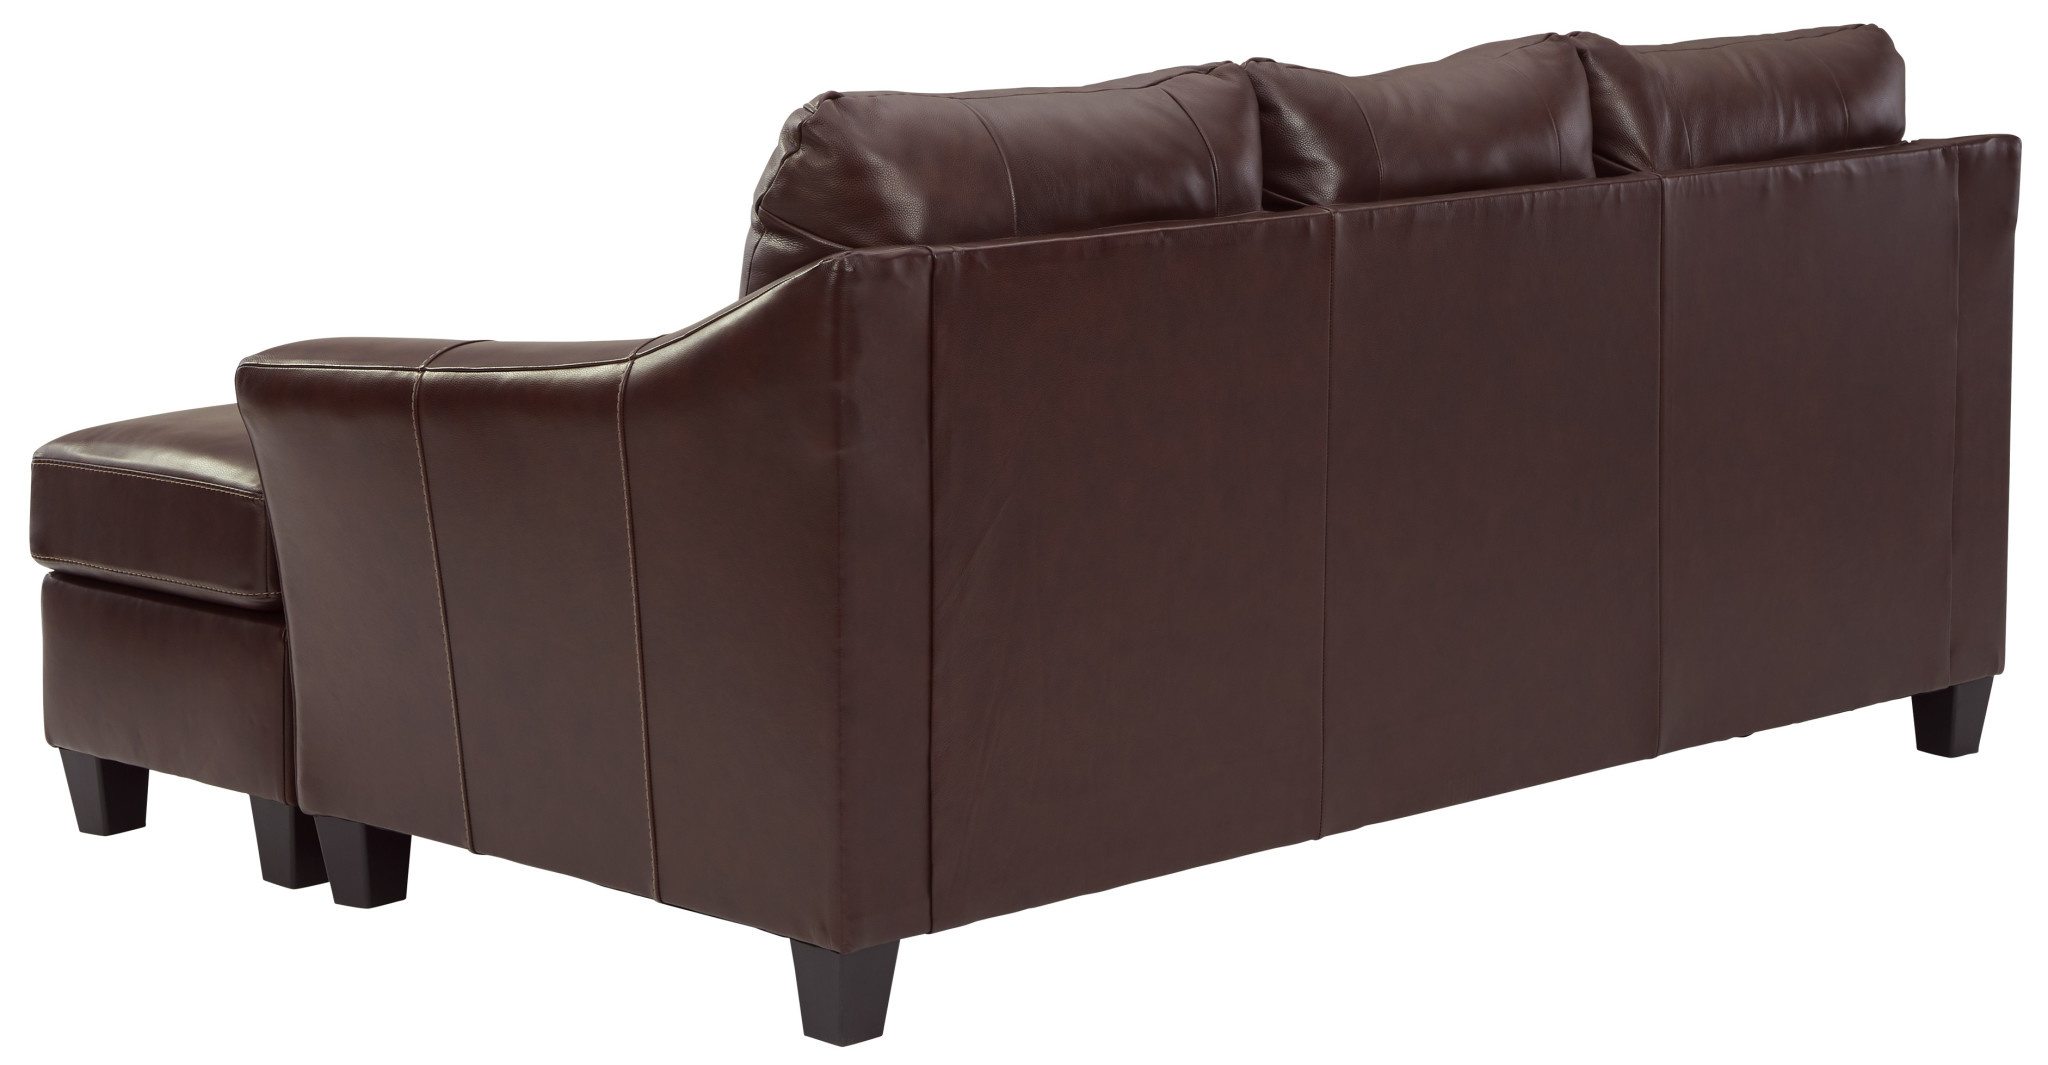 """Signature Design Reversible Sofa Chaise """"Fortney"""" Mahogany Color- Leather 9240618"""